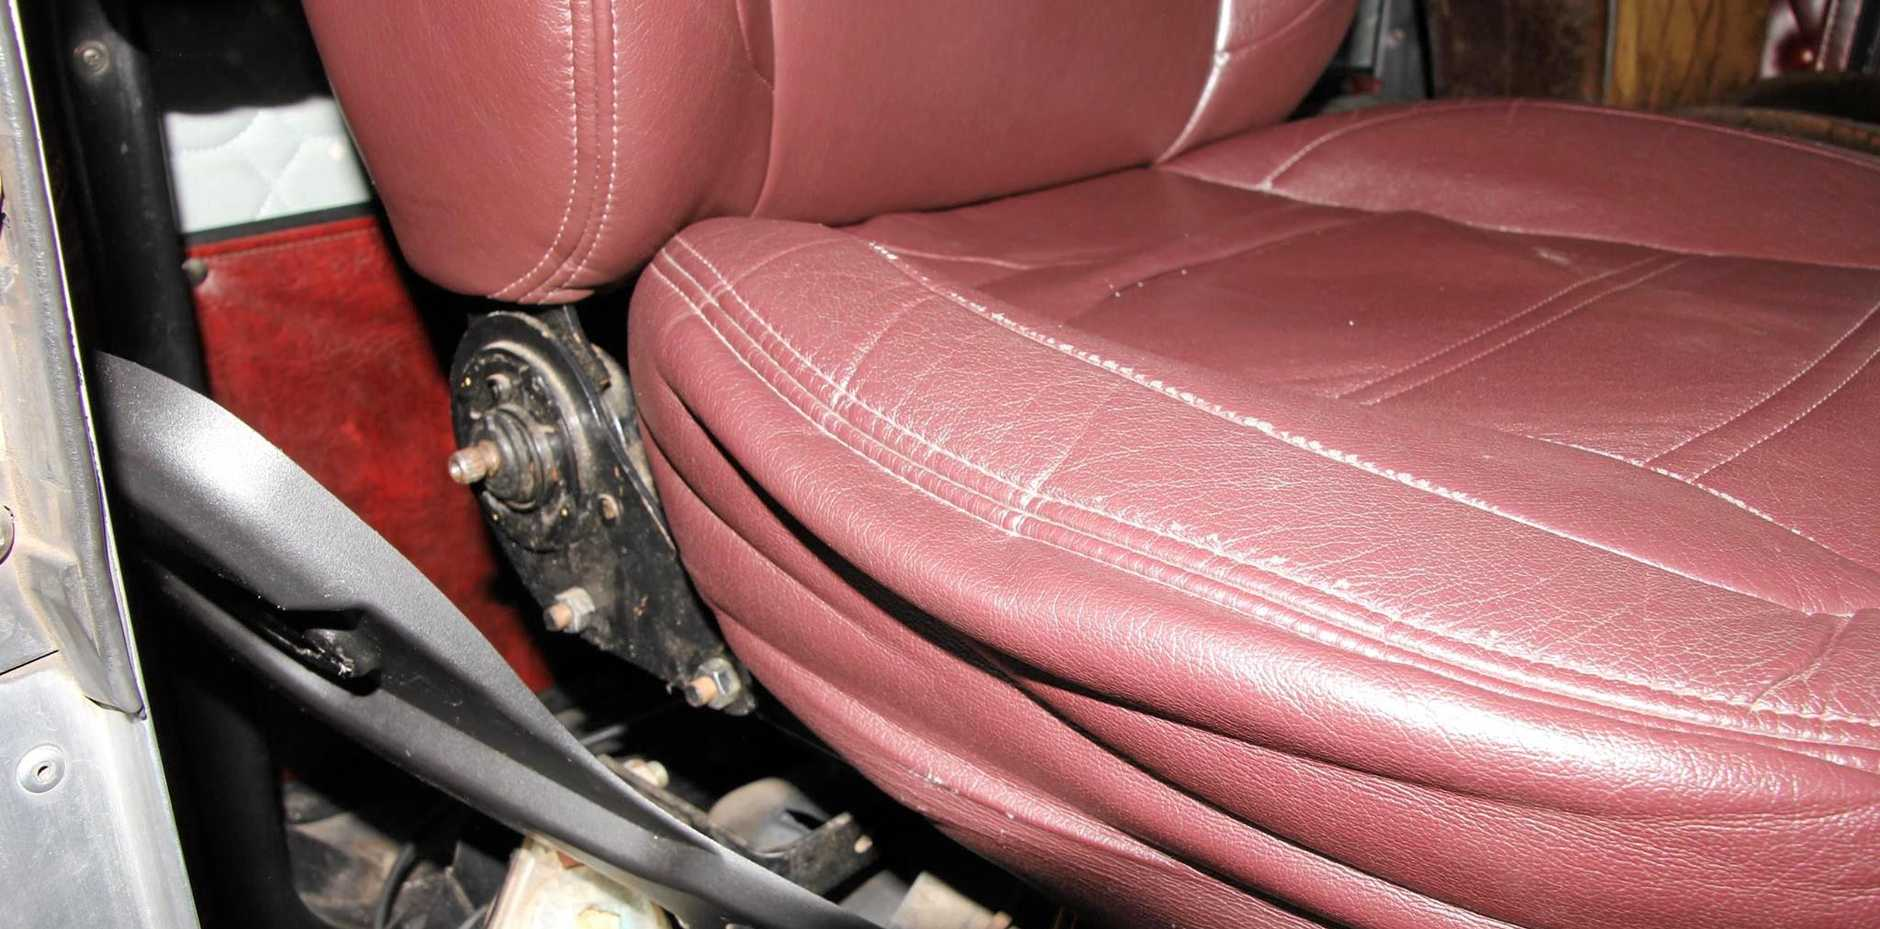 Yesterday police issued a defect notice for this loose seat.